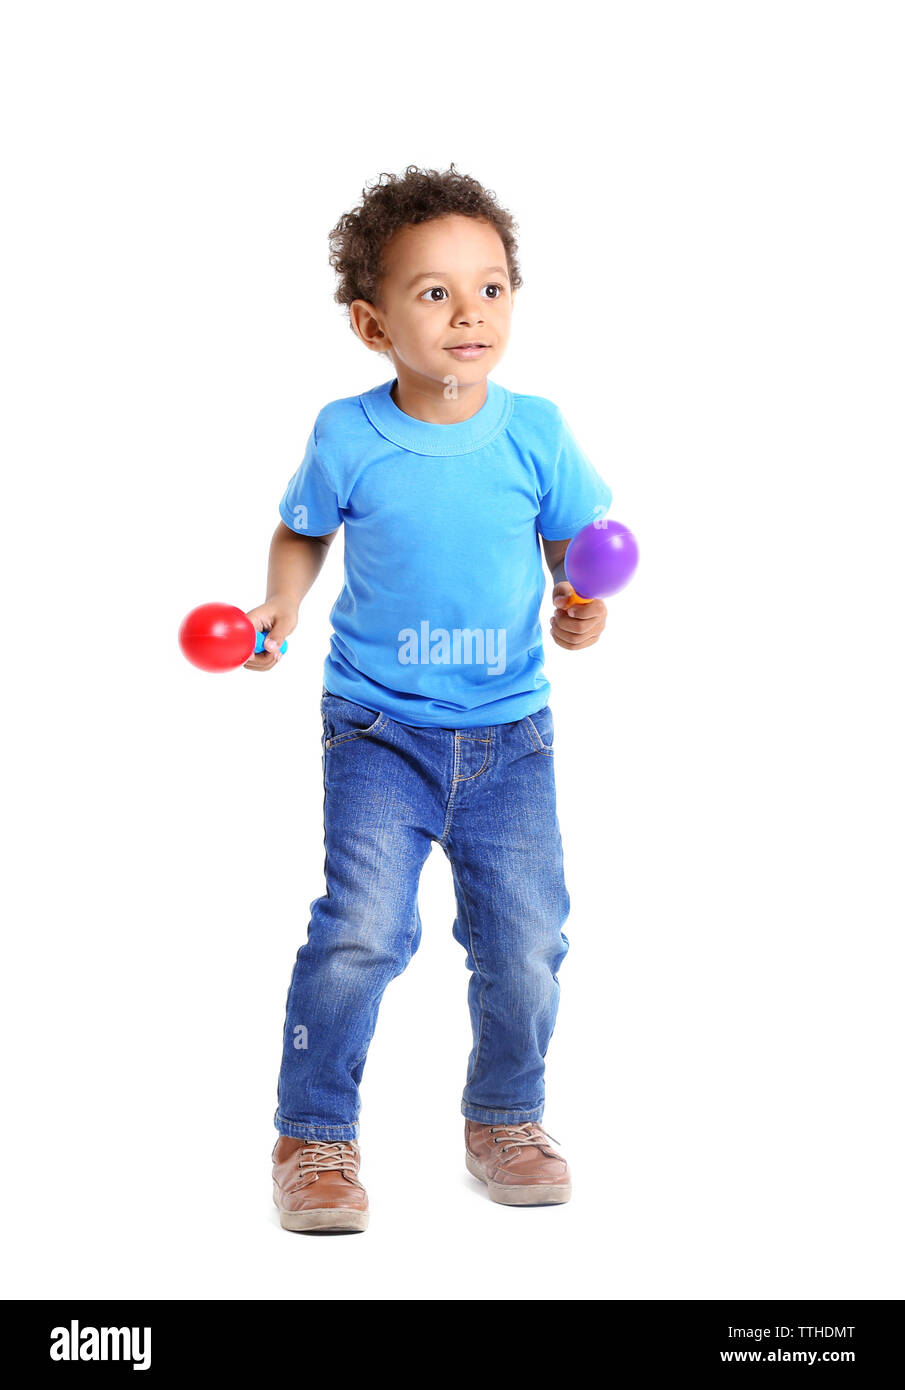 Little boy playing on maracas, isolated on white - Stock Image